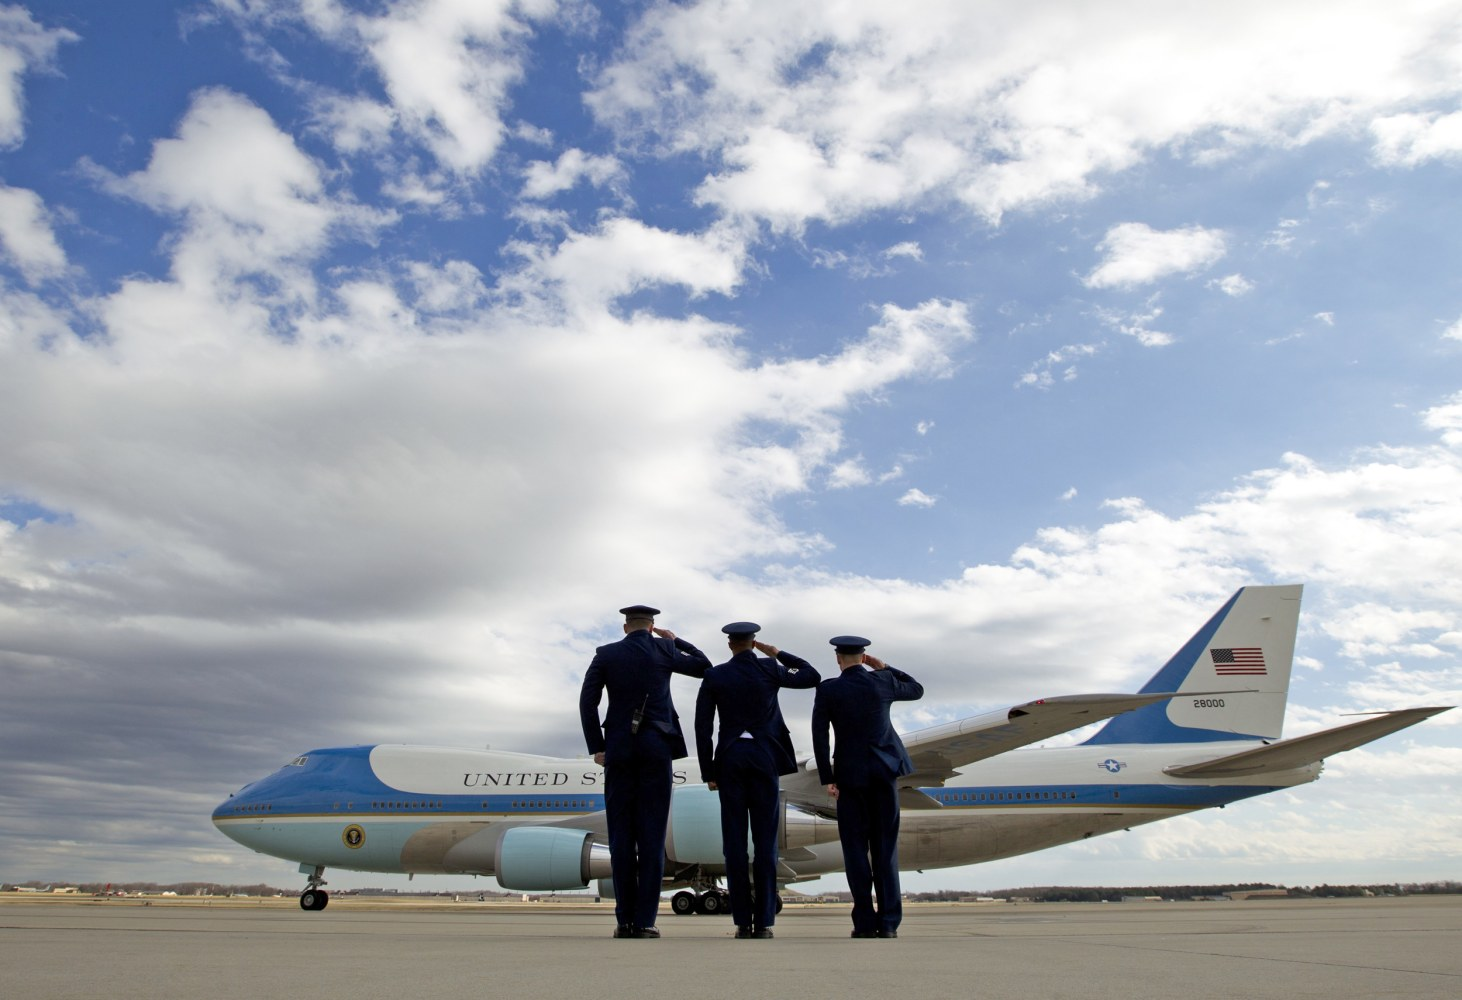 President Trump Takes His First Ride on Air Force One ...